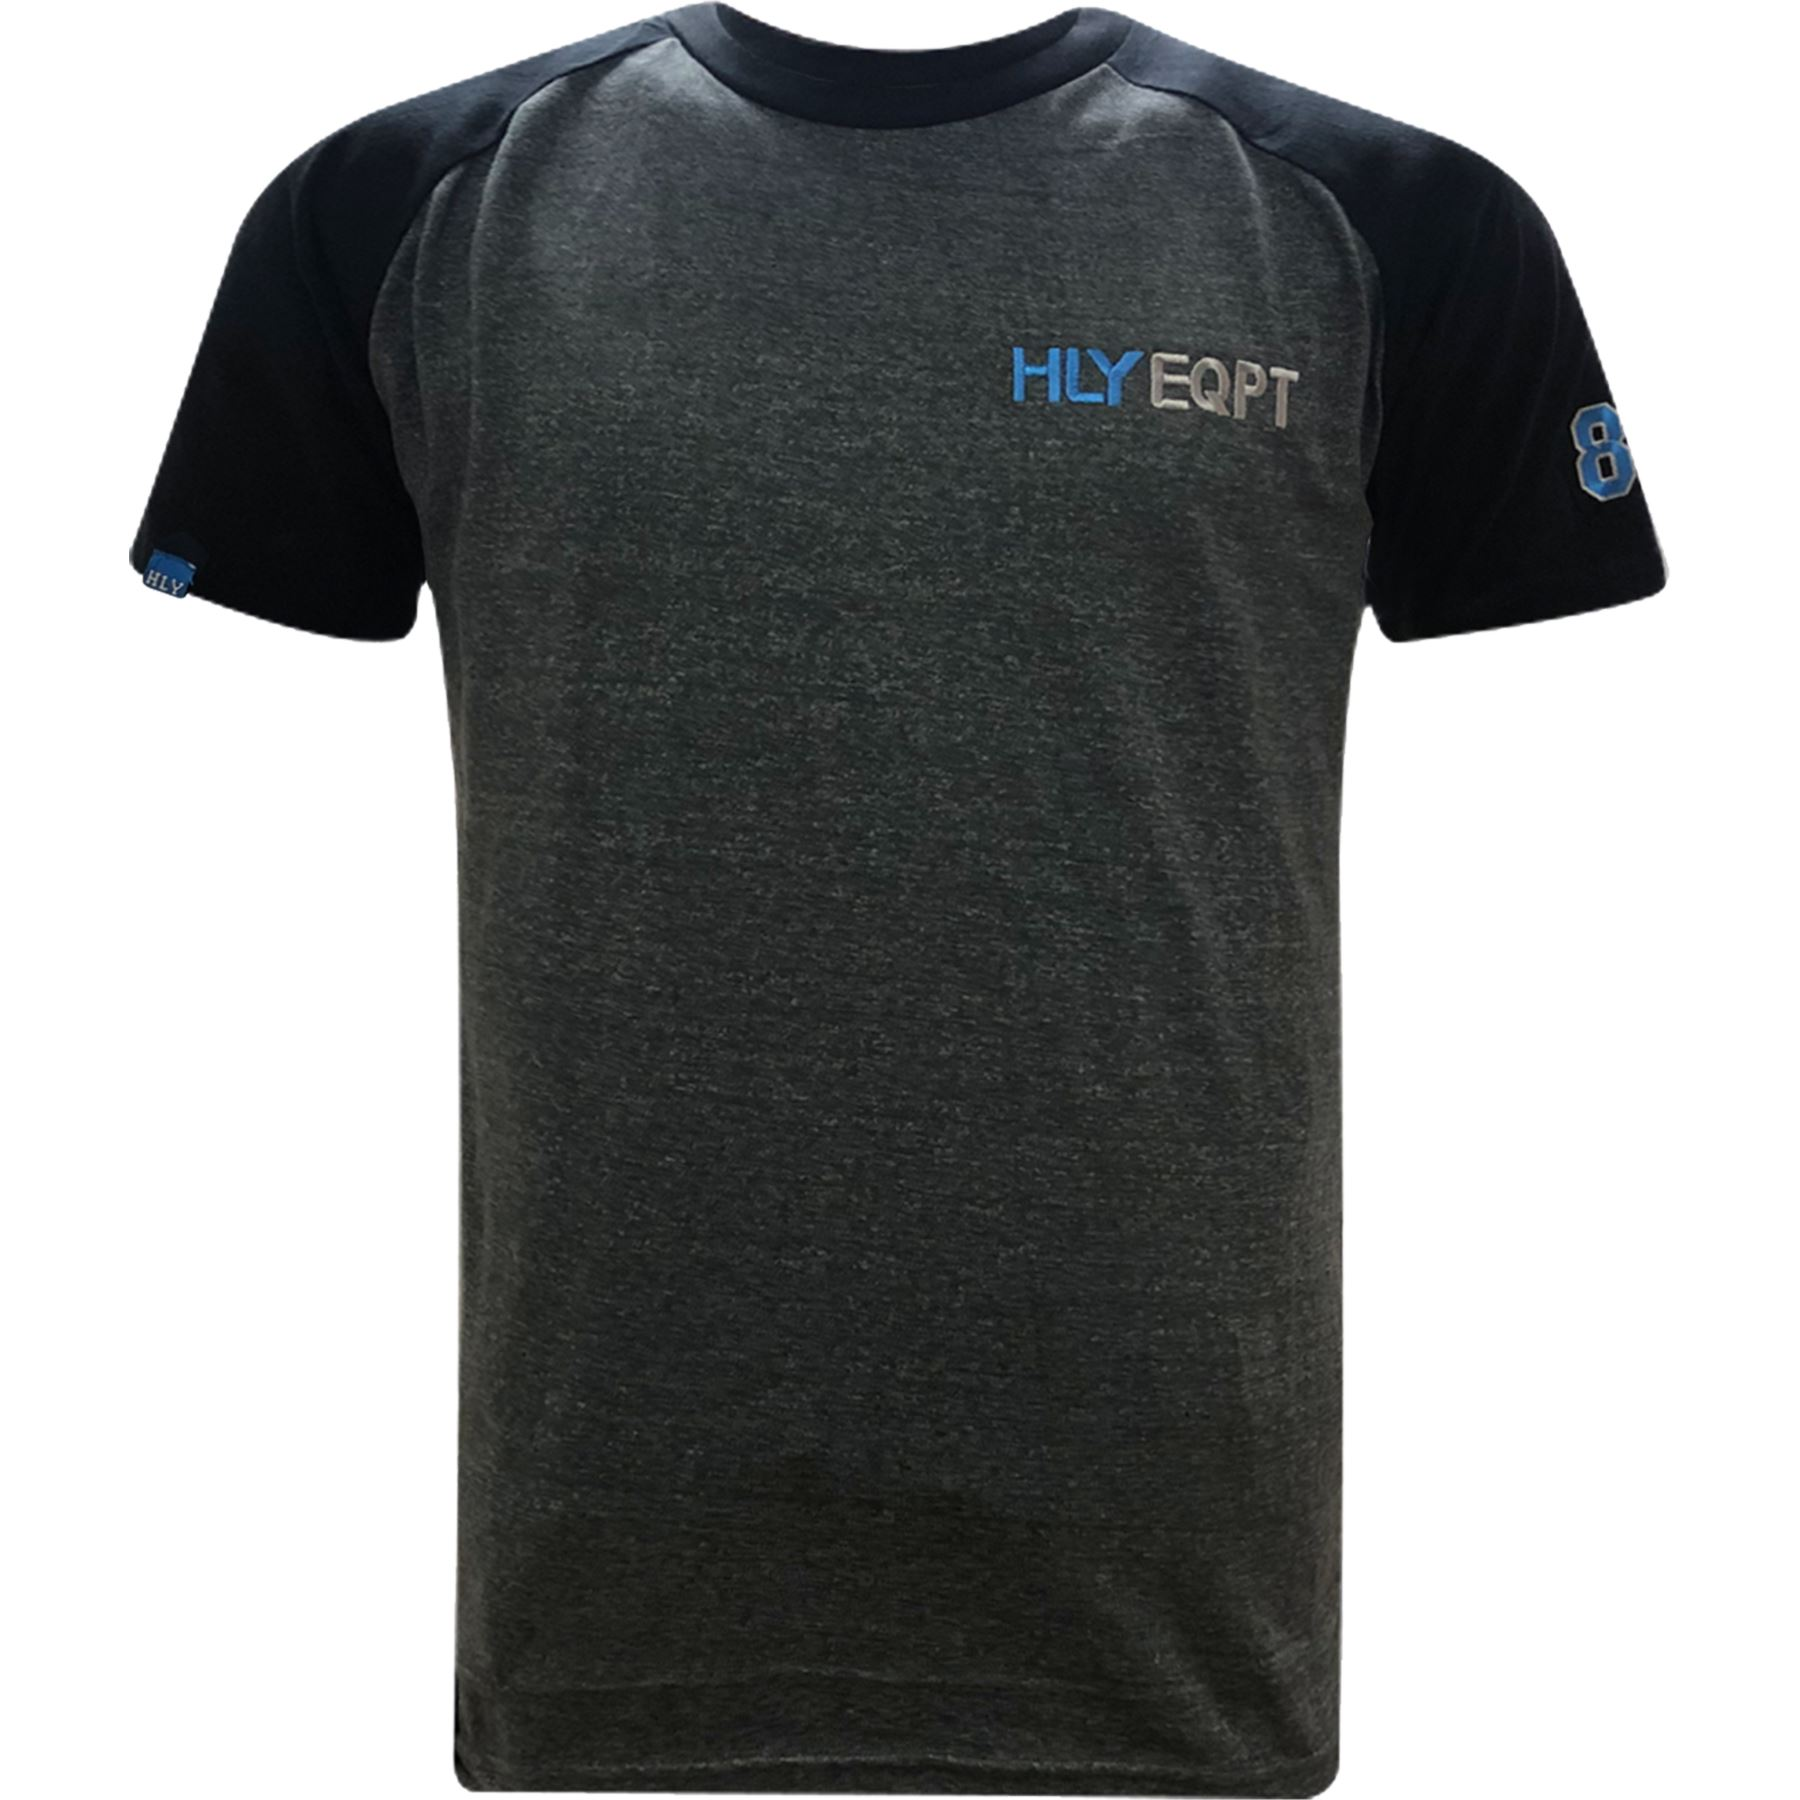 Mens-HLY-EQPT-Printed-T-Shirt-100-Cotton-Gym-Athletic-Training-Tee-Top-Summer thumbnail 25